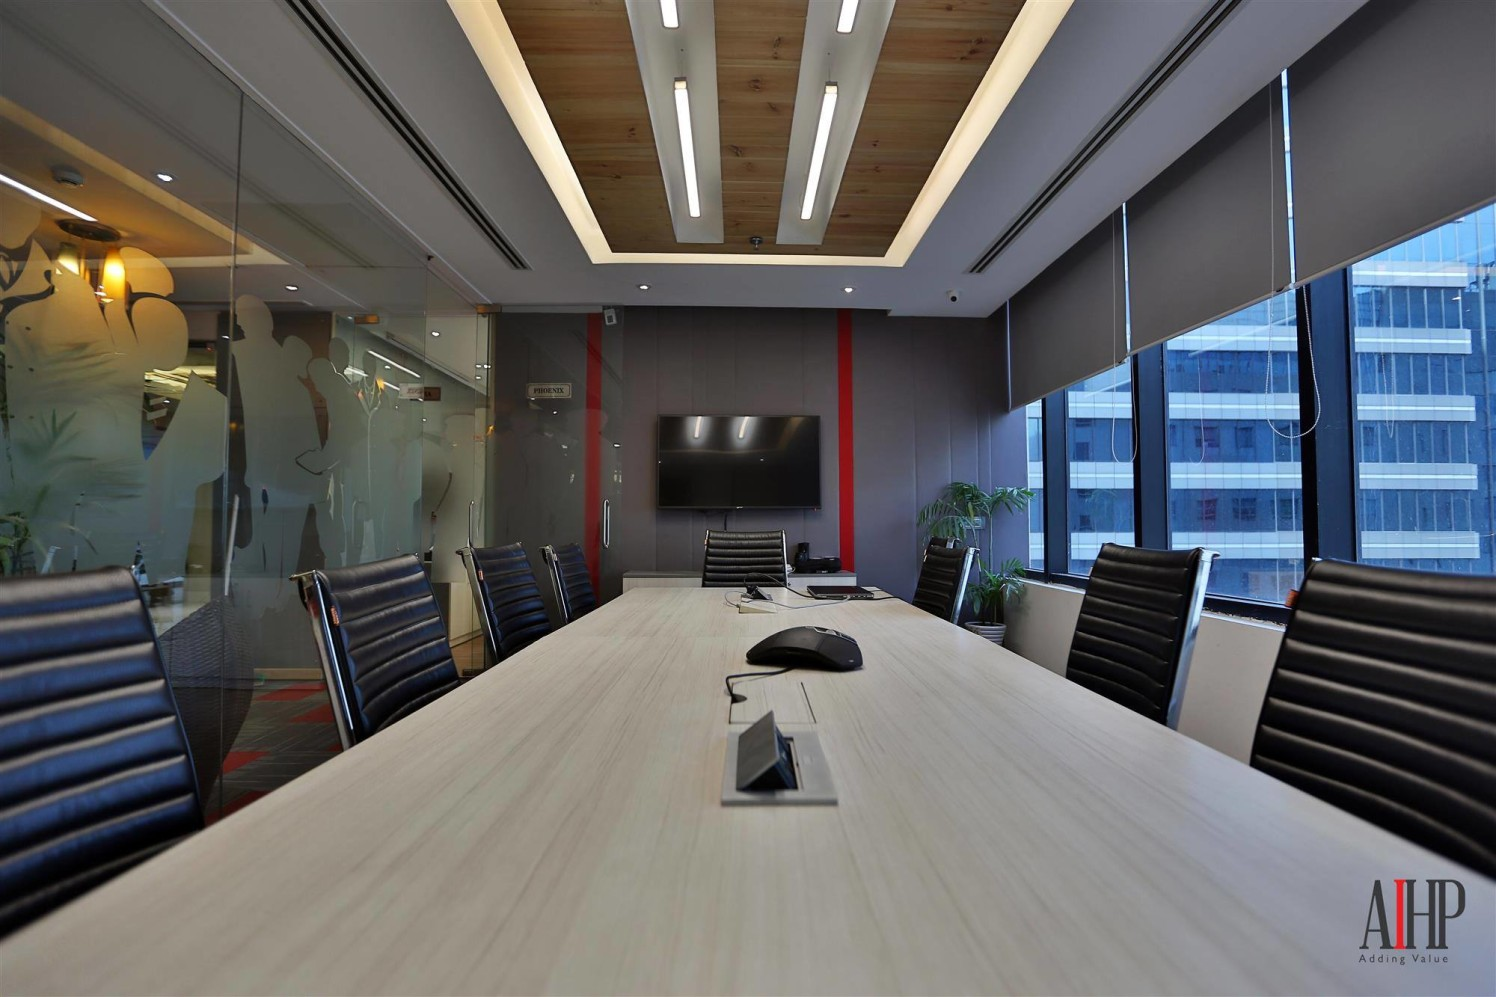 Conference Room with Pine Oak Wooden Table And Black Chairs by Arjun Sobti  Modern | Interior Design Photos & Ideas